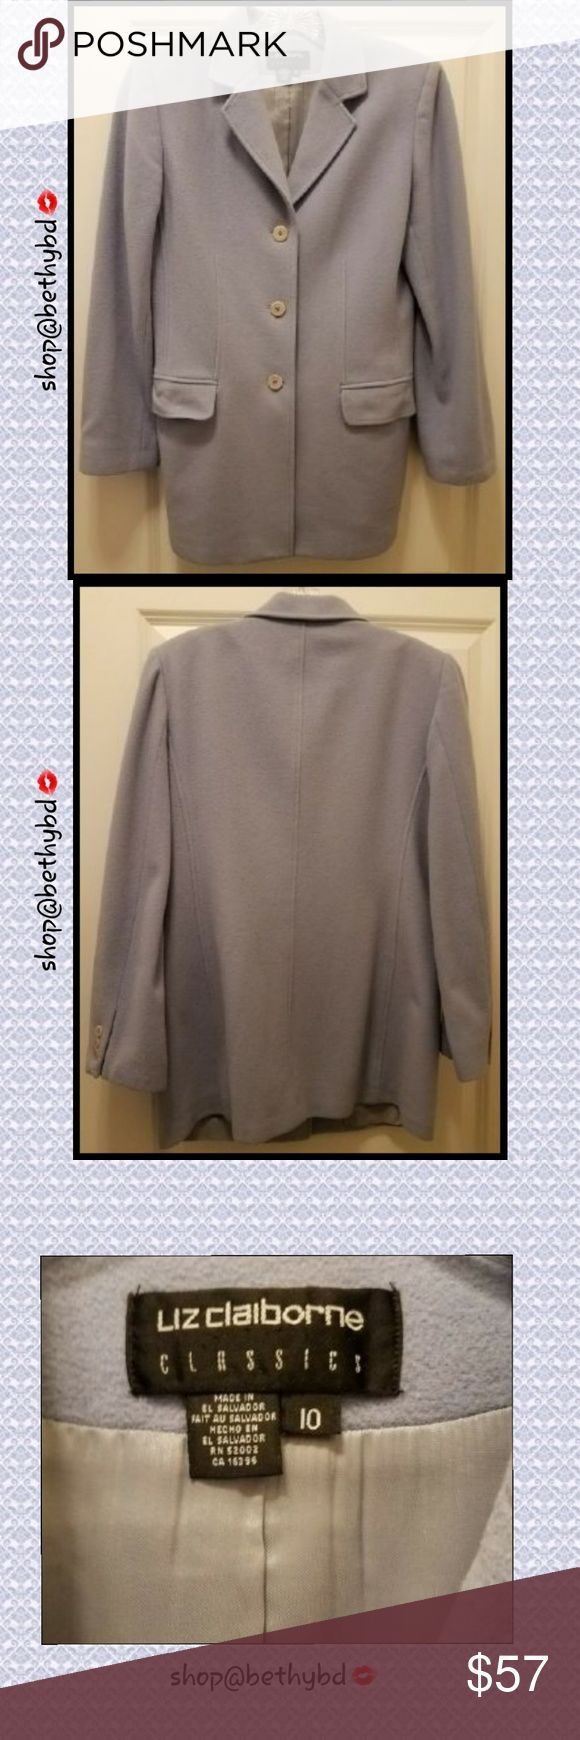 "🆕️Vintage EUC Liz Claiborne Classics Sz10 Blazer JUST ADDED⏩🎁🎀  ""Baby Blue"" jacket/blazer.   This is Vintage Liz Claiborne   FABRIC: ☄Luxury Cashmere/Wool blend Dry cleans beautifully  Excellent Used Condition (EUC)  Size 10 ladies blazer/jacket  Pair it with pants, a skirt or maybe even leggings  Underarm to underarm measurement laying flat is approximately 18"" (see pics in listing above)  Jacket length from shoulder to hem is approximately 29"". (See pics in listing above ) It is a…"